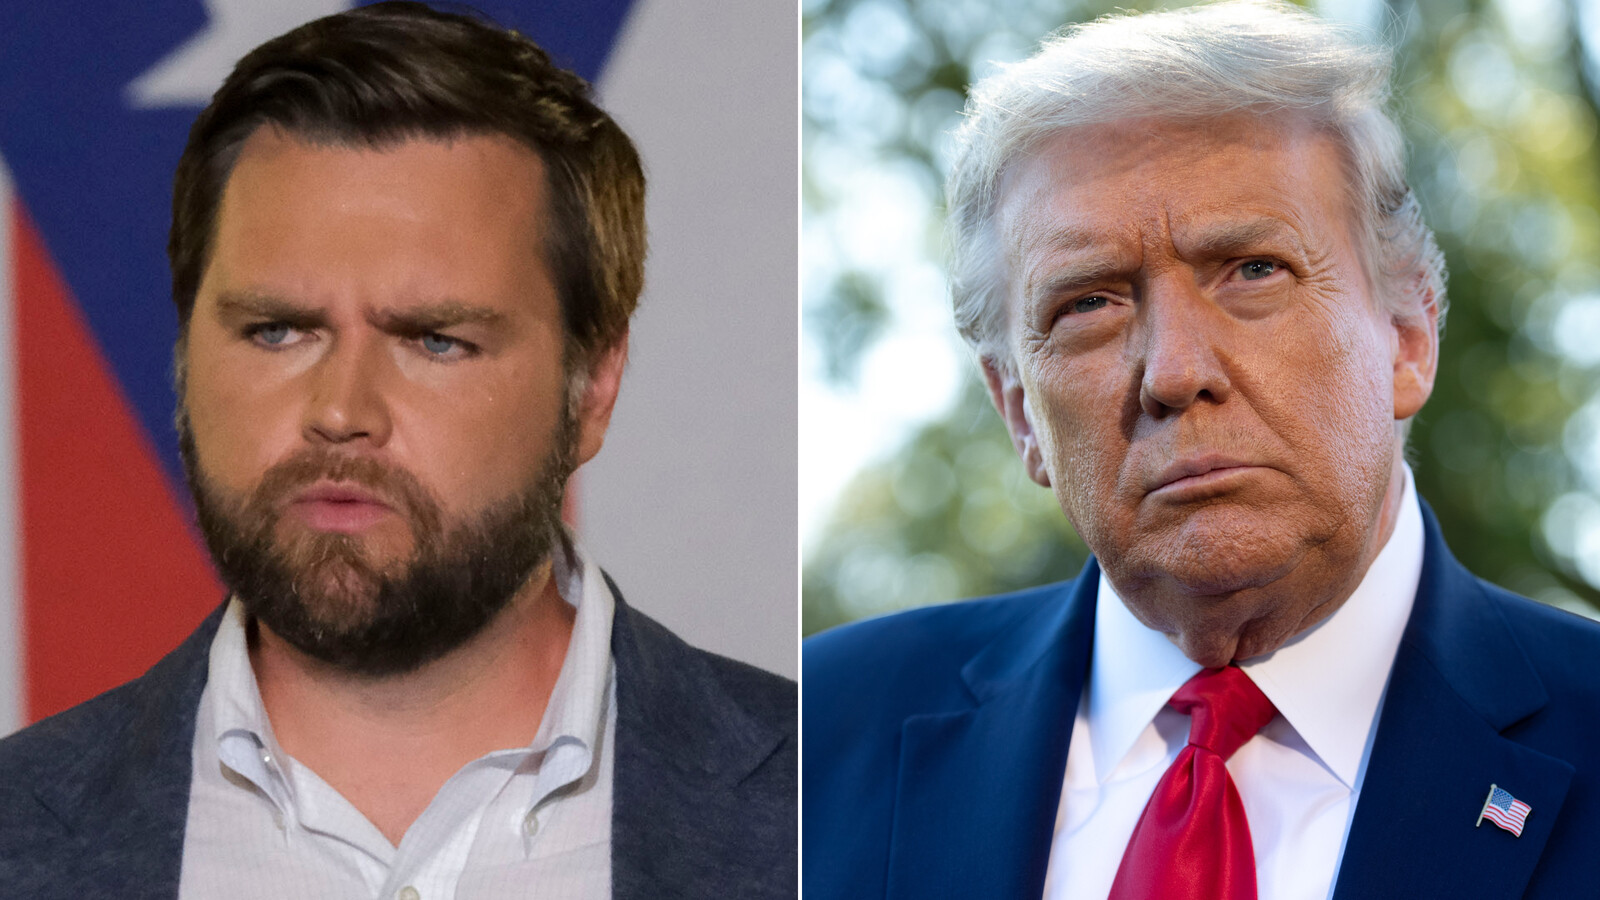 Pro-Trump Senate hopeful J.D. Vance called then-President a 'moral disaster' in 2017 messages